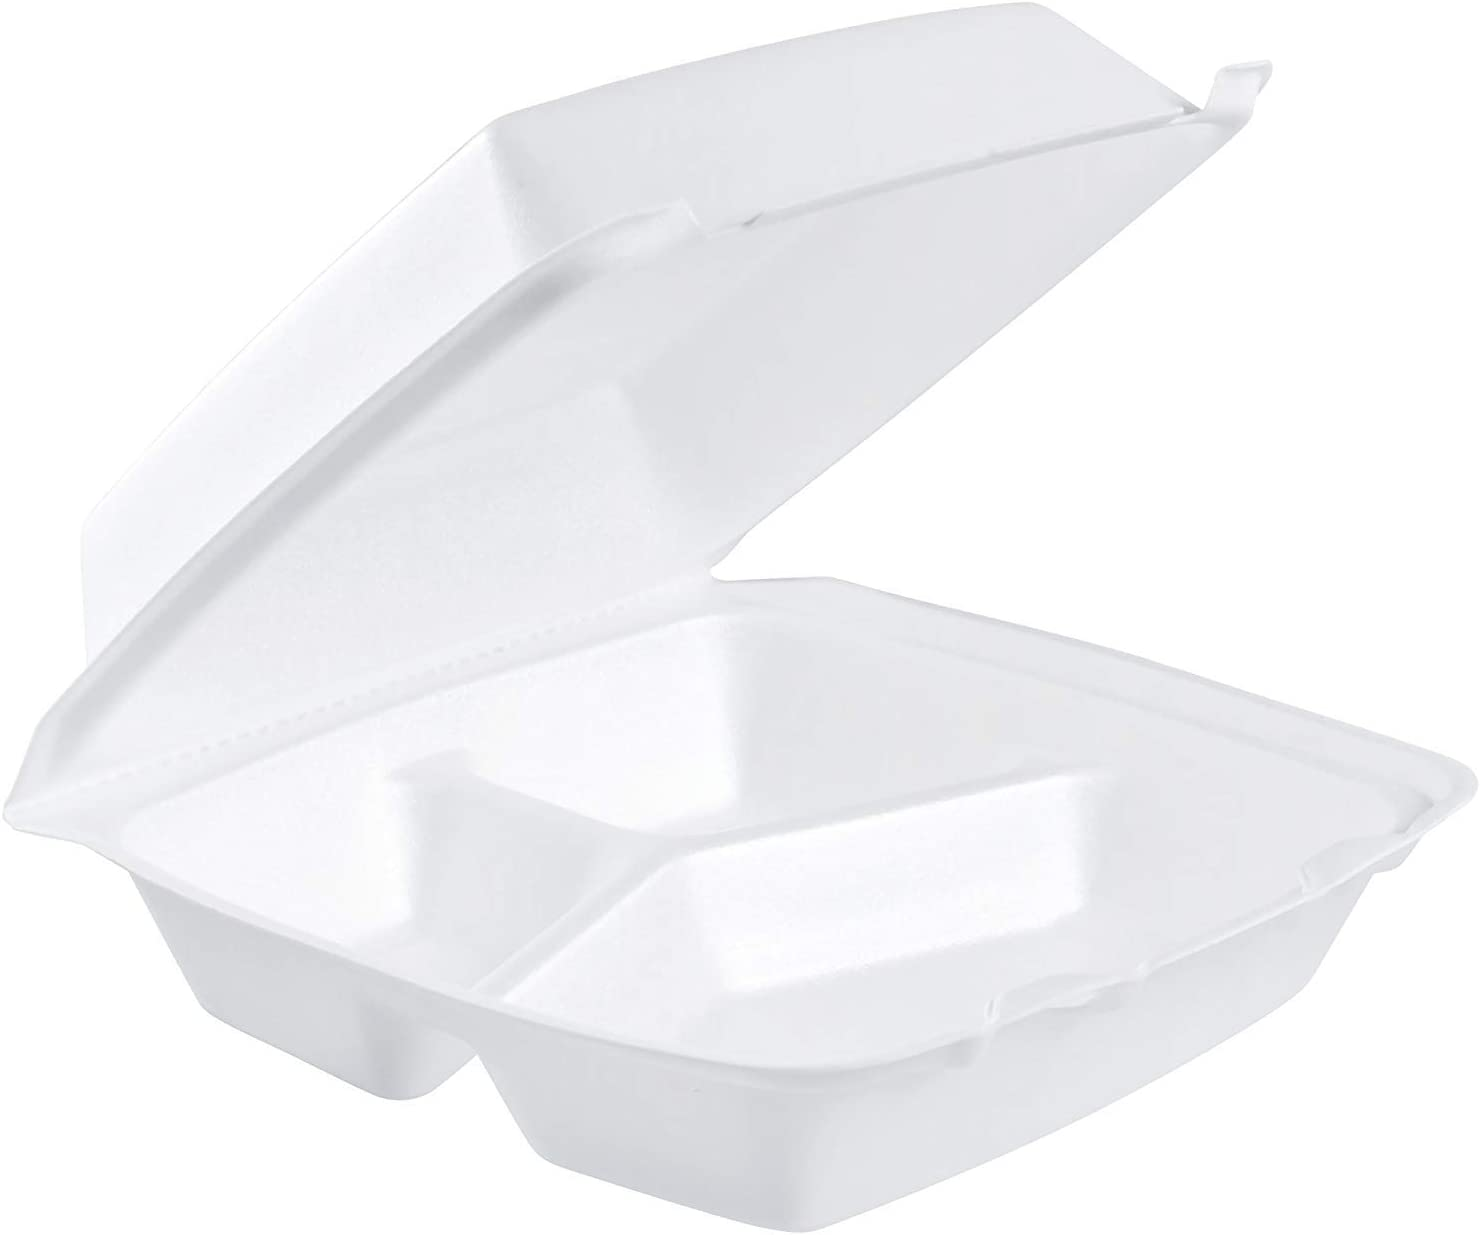 Dart 85HT3R, 8x8x3-Inch Performer White Three Compartment Foam Container With A Removable Hinged Lid, Carryout Food Disposable Containers (50)